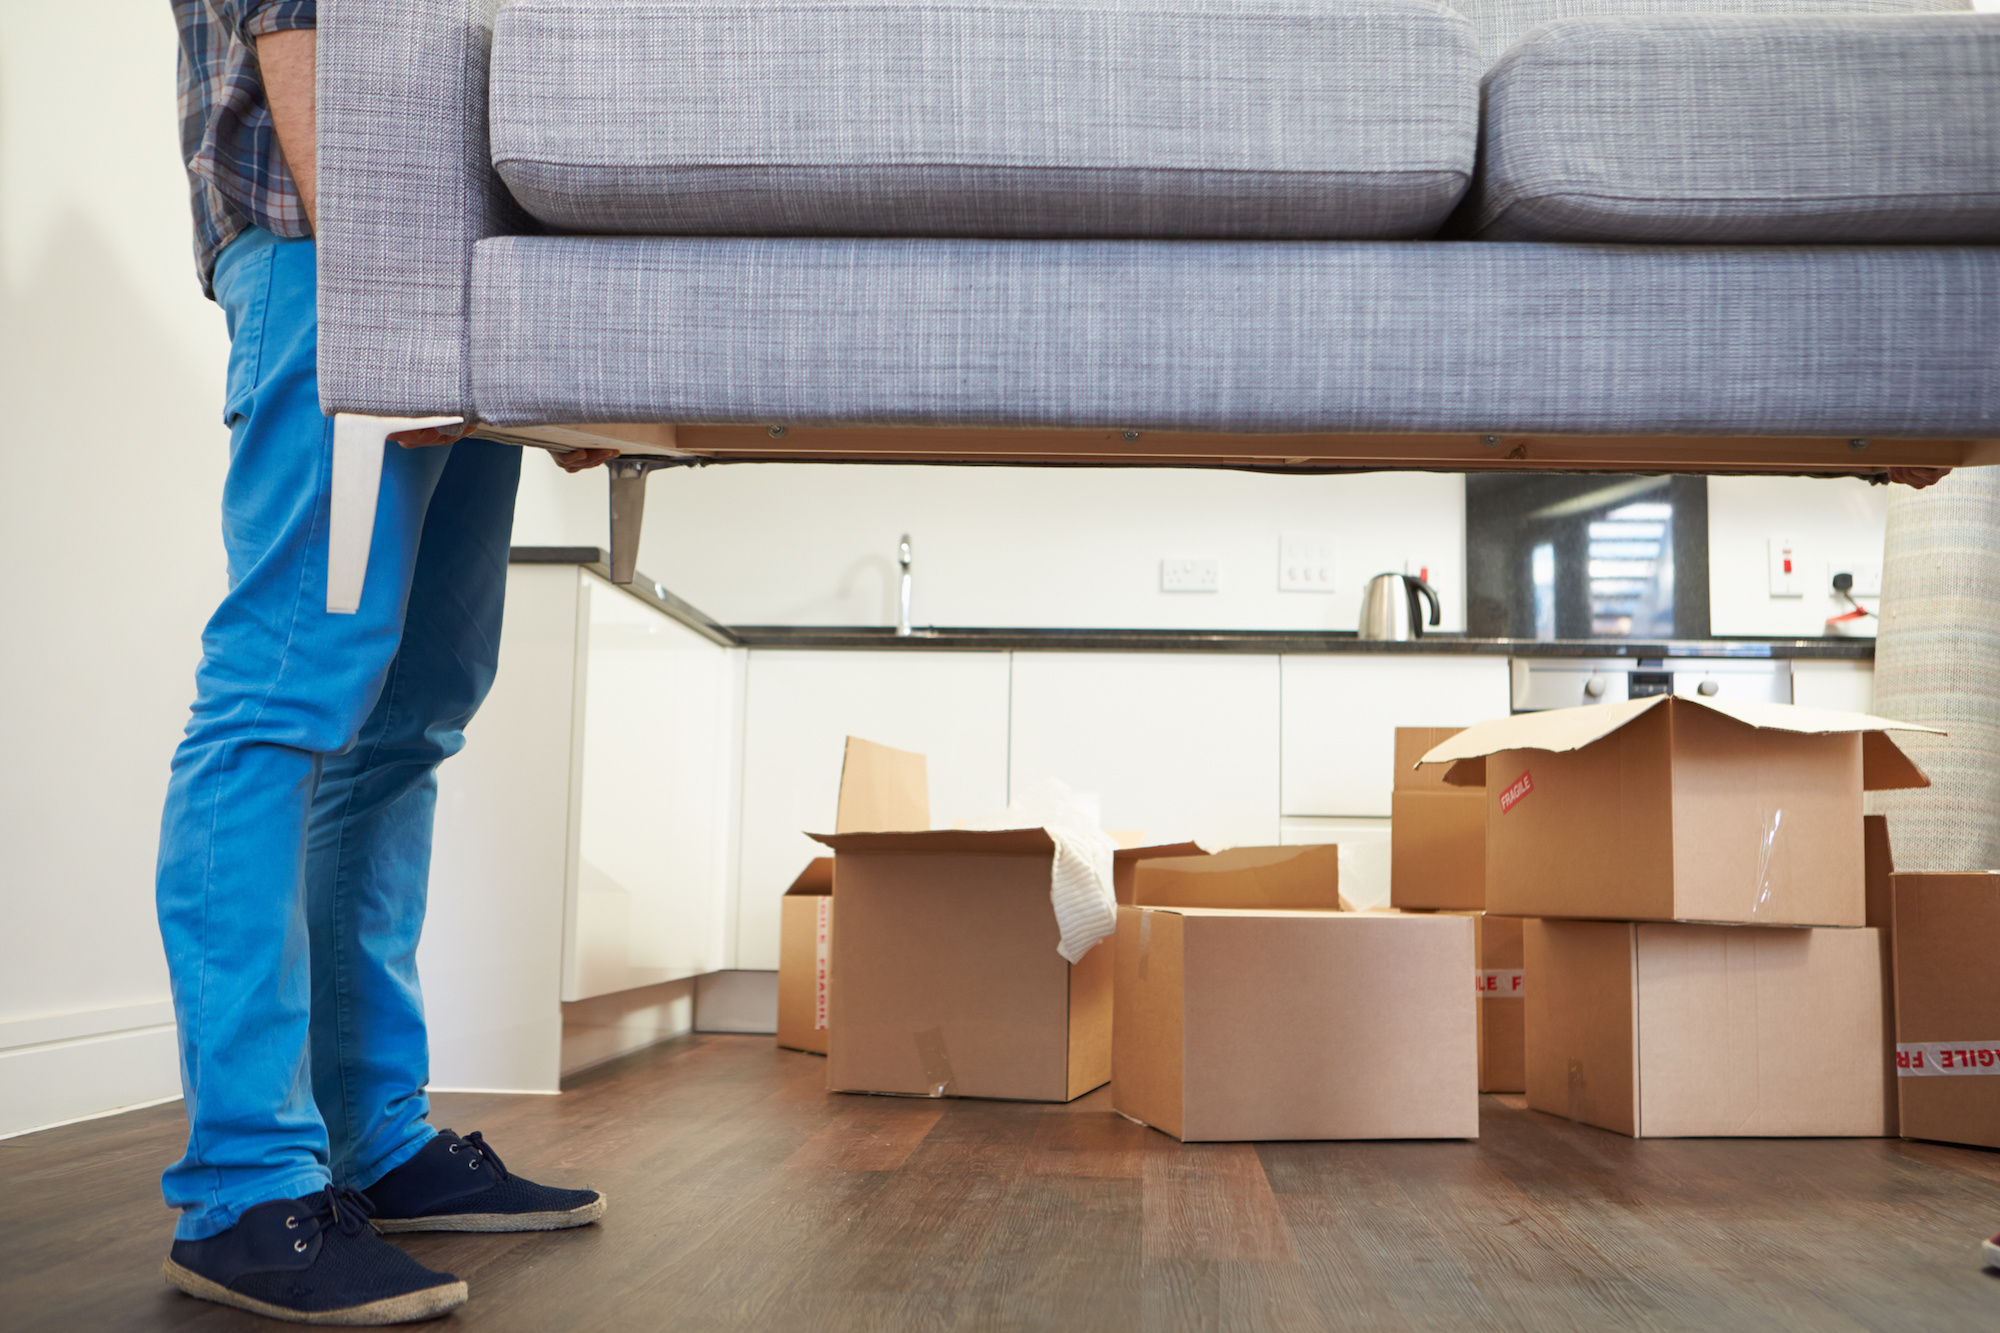 What to Ask When Your Adult Child Moves Home